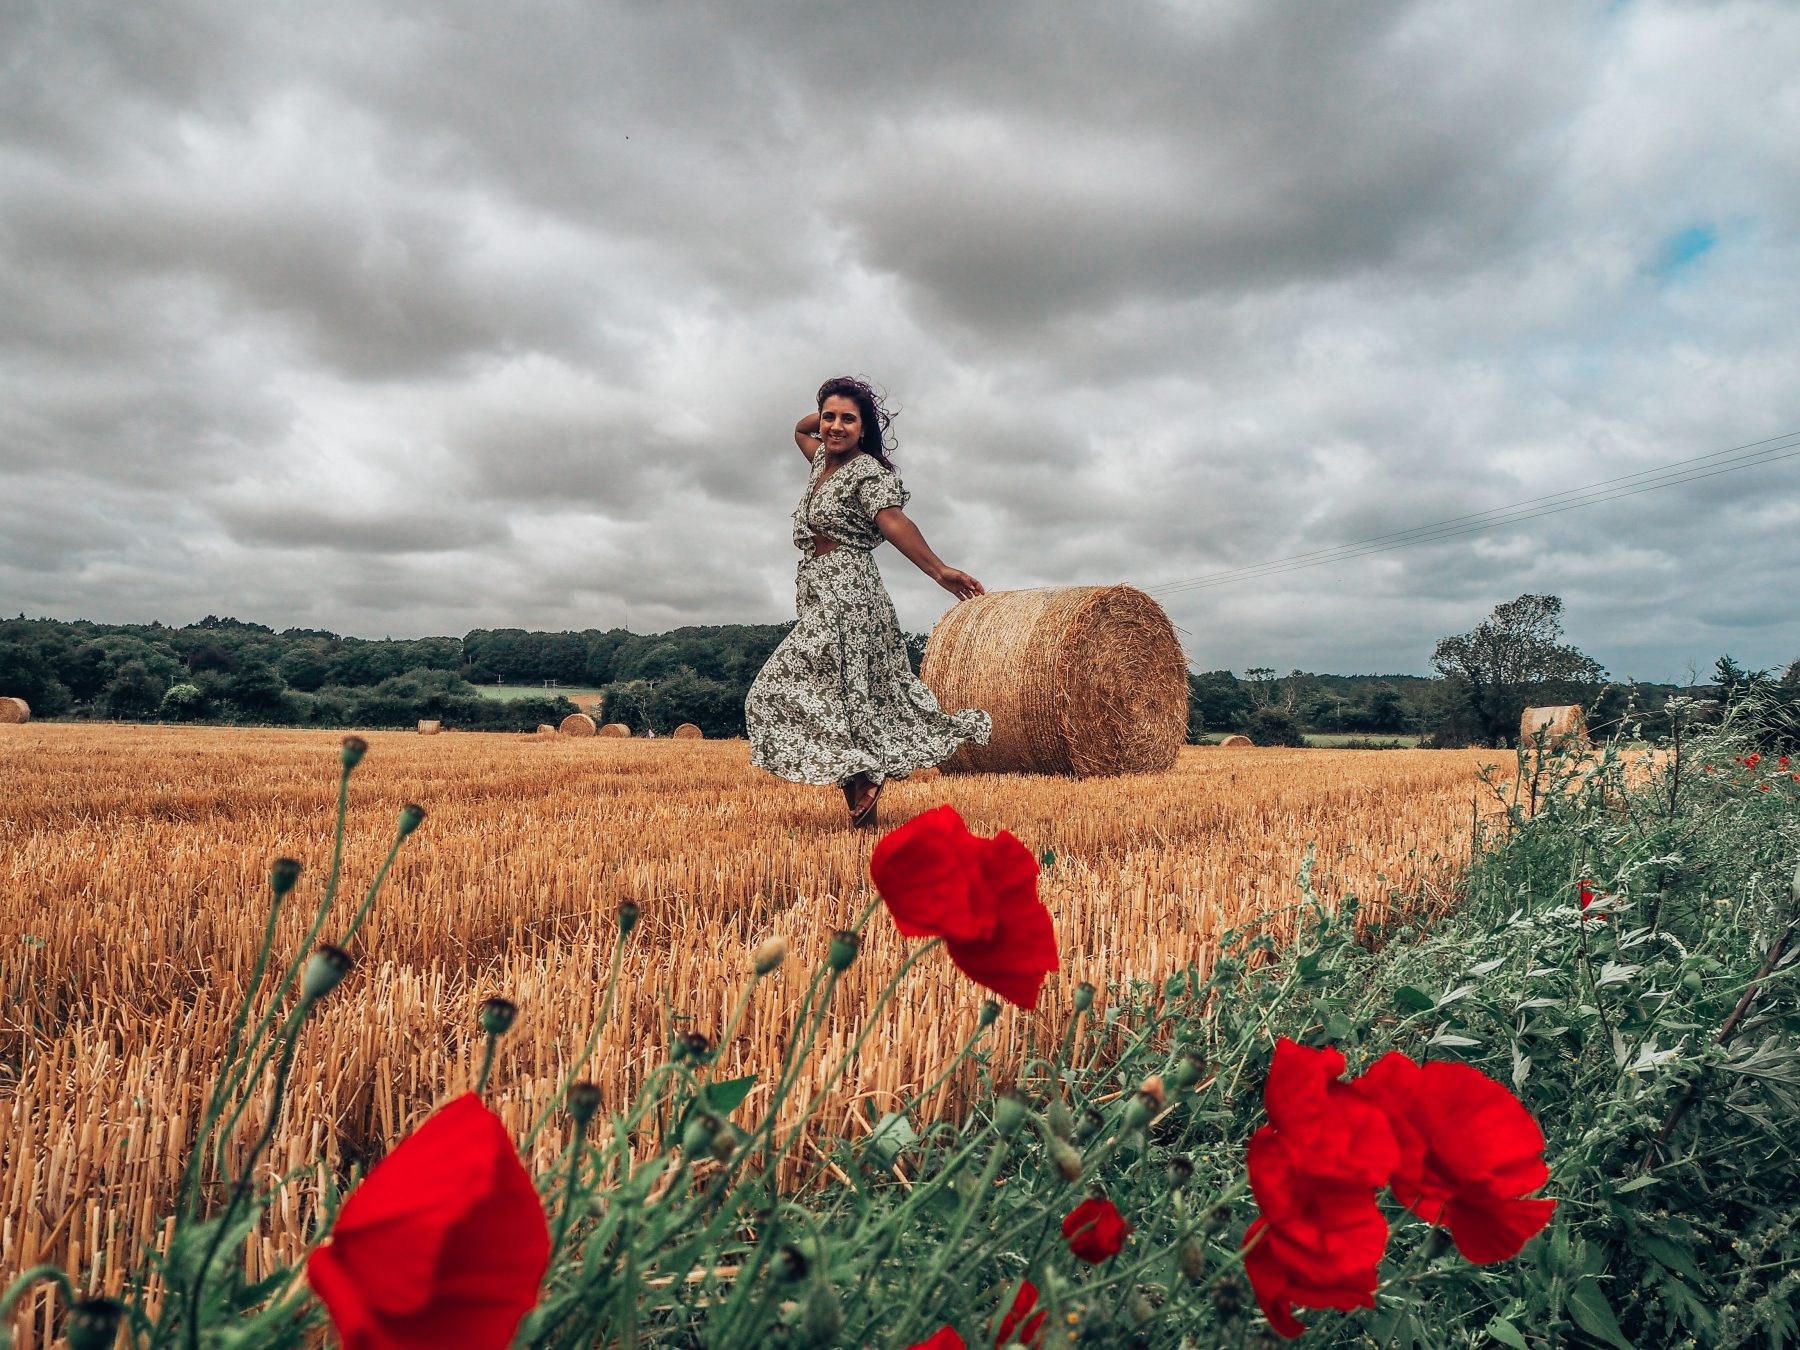 Making career plans in the countryside - dancing in front of hay bale, norfolk